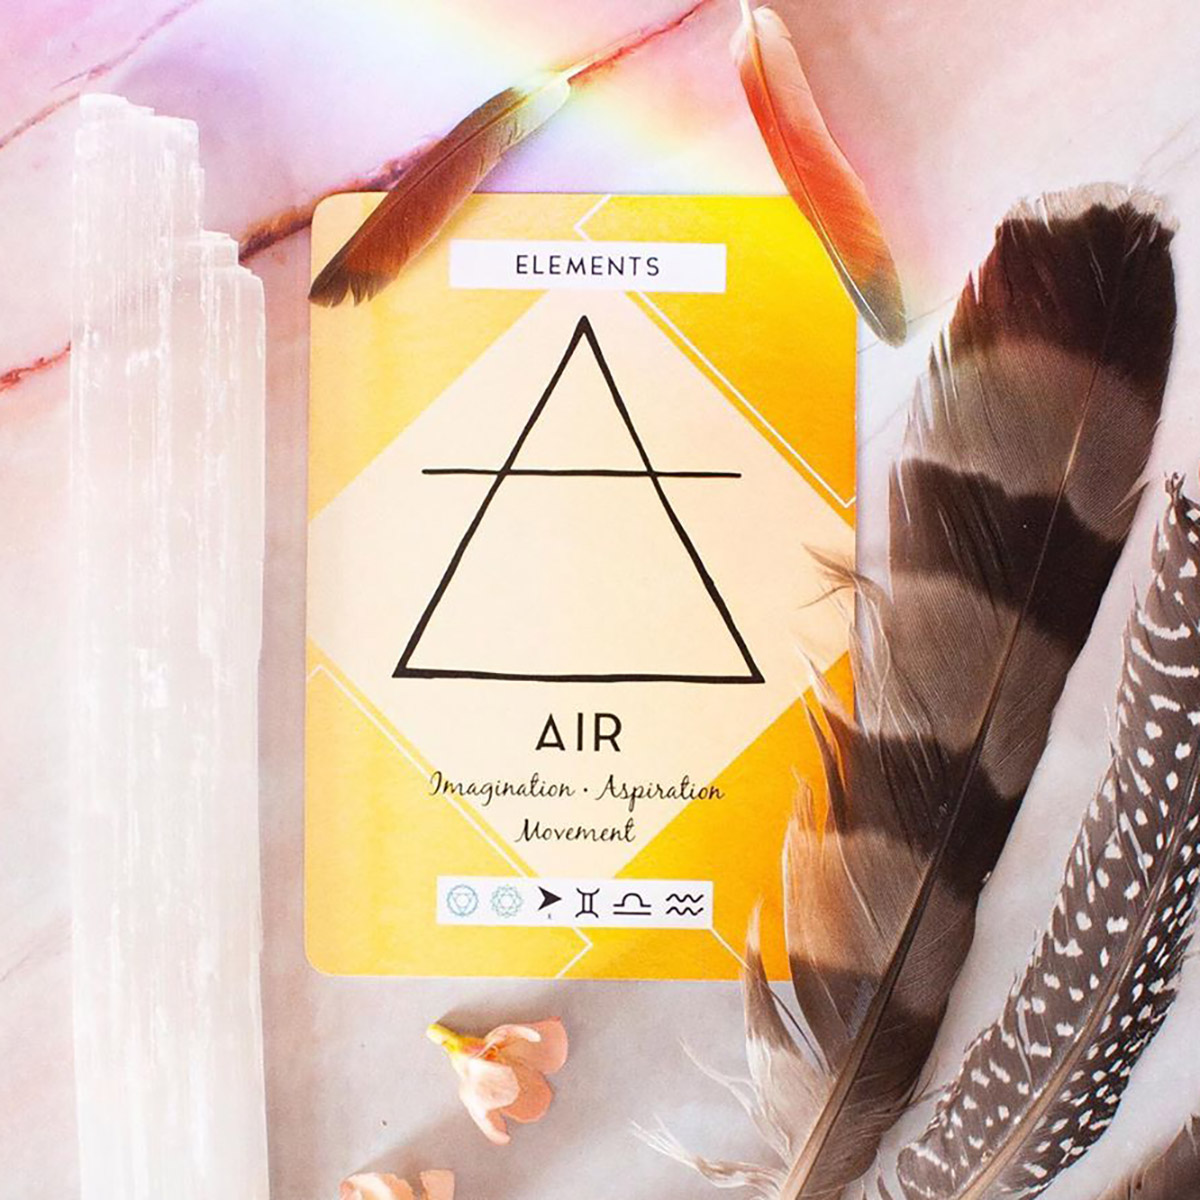 air element libra meaning